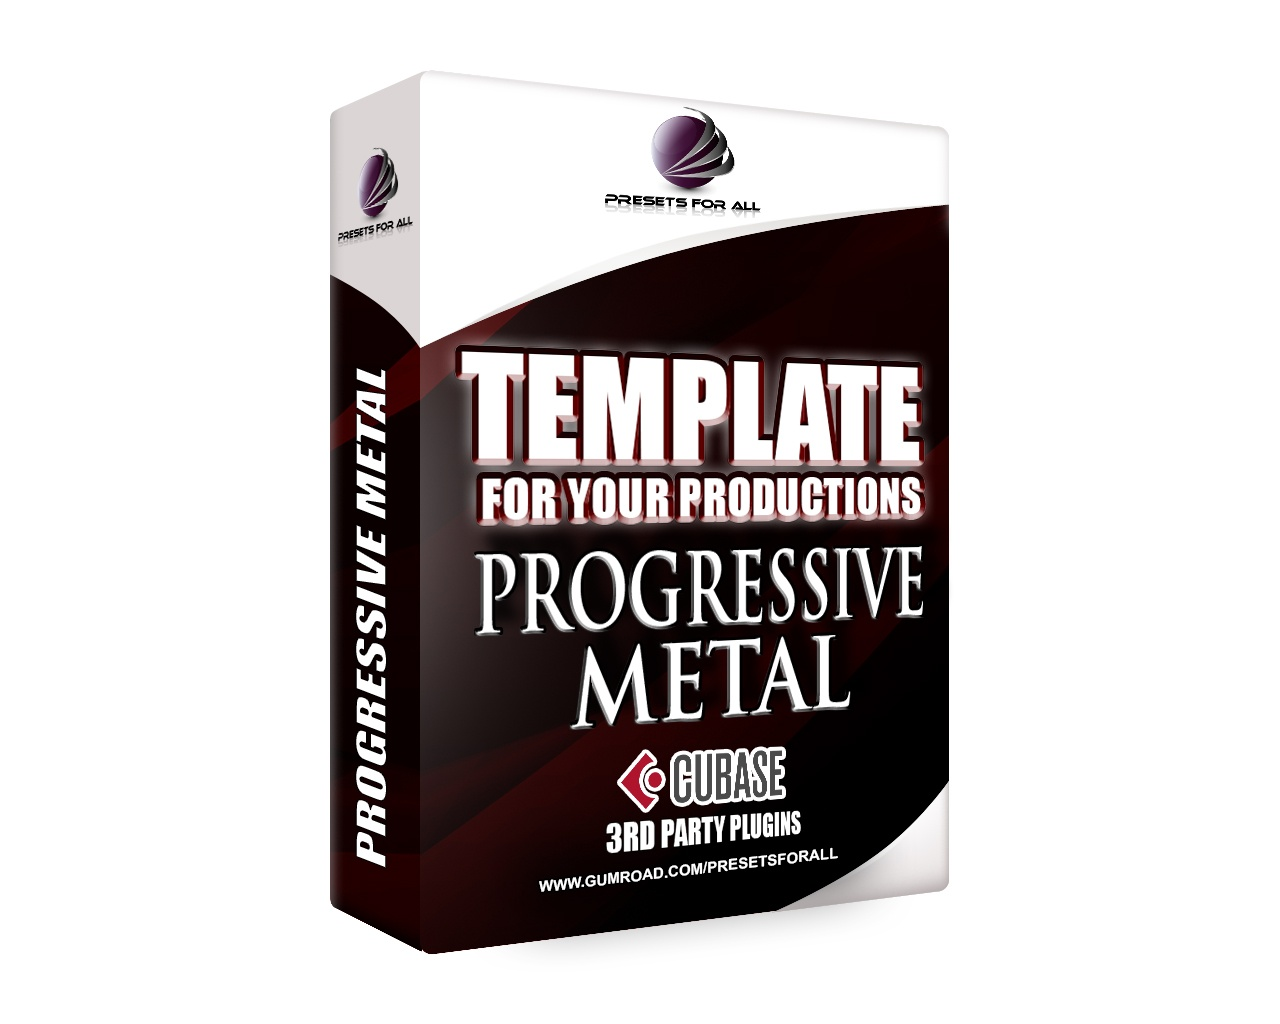 Template For Your Productions - PROGRESSIVE METAL (Cubase Version)